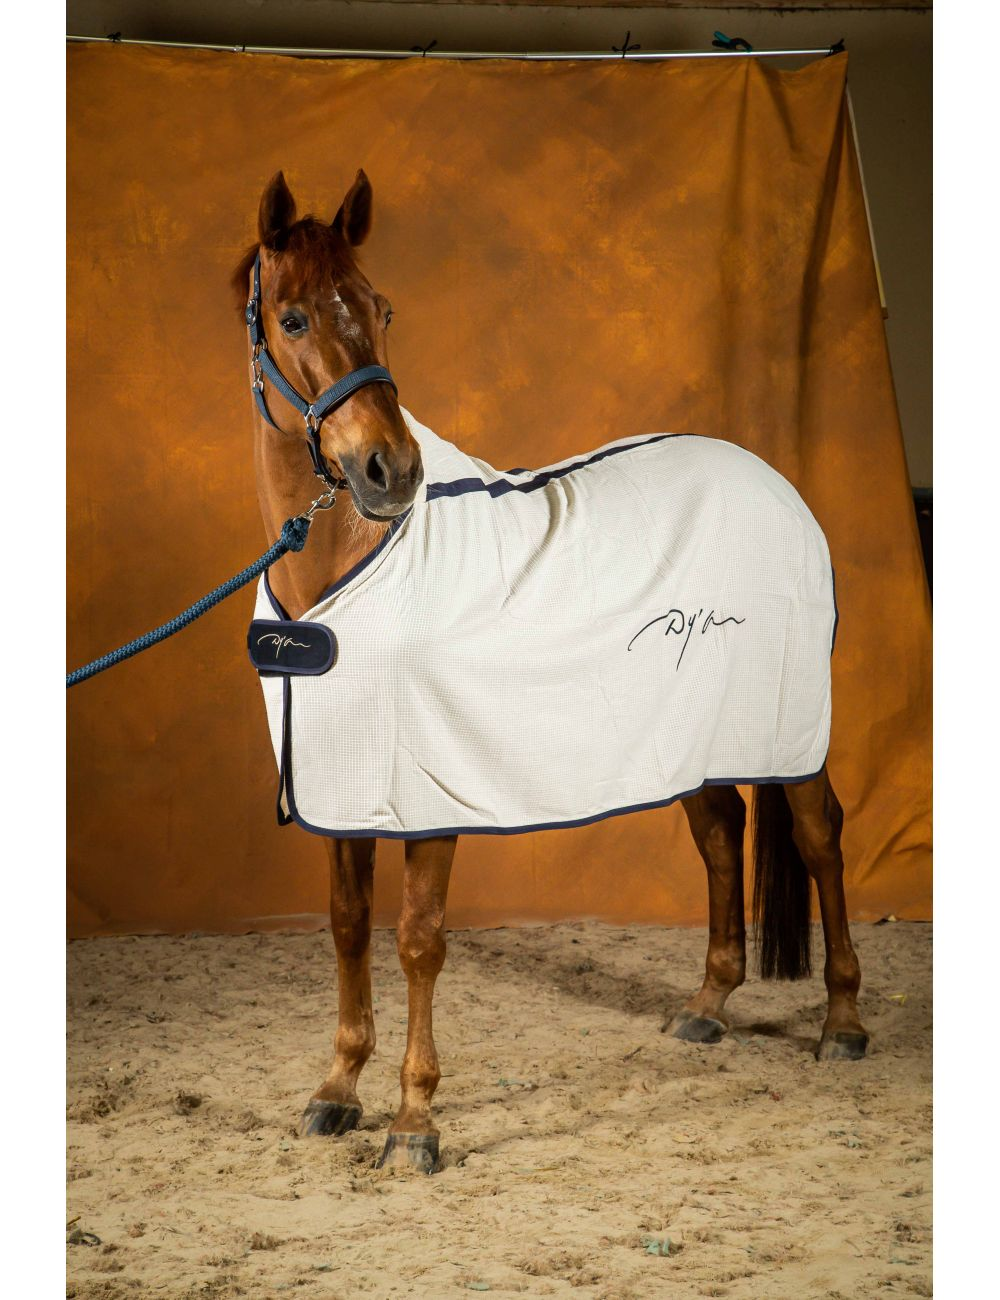 Dyon honey cooler rug - 1